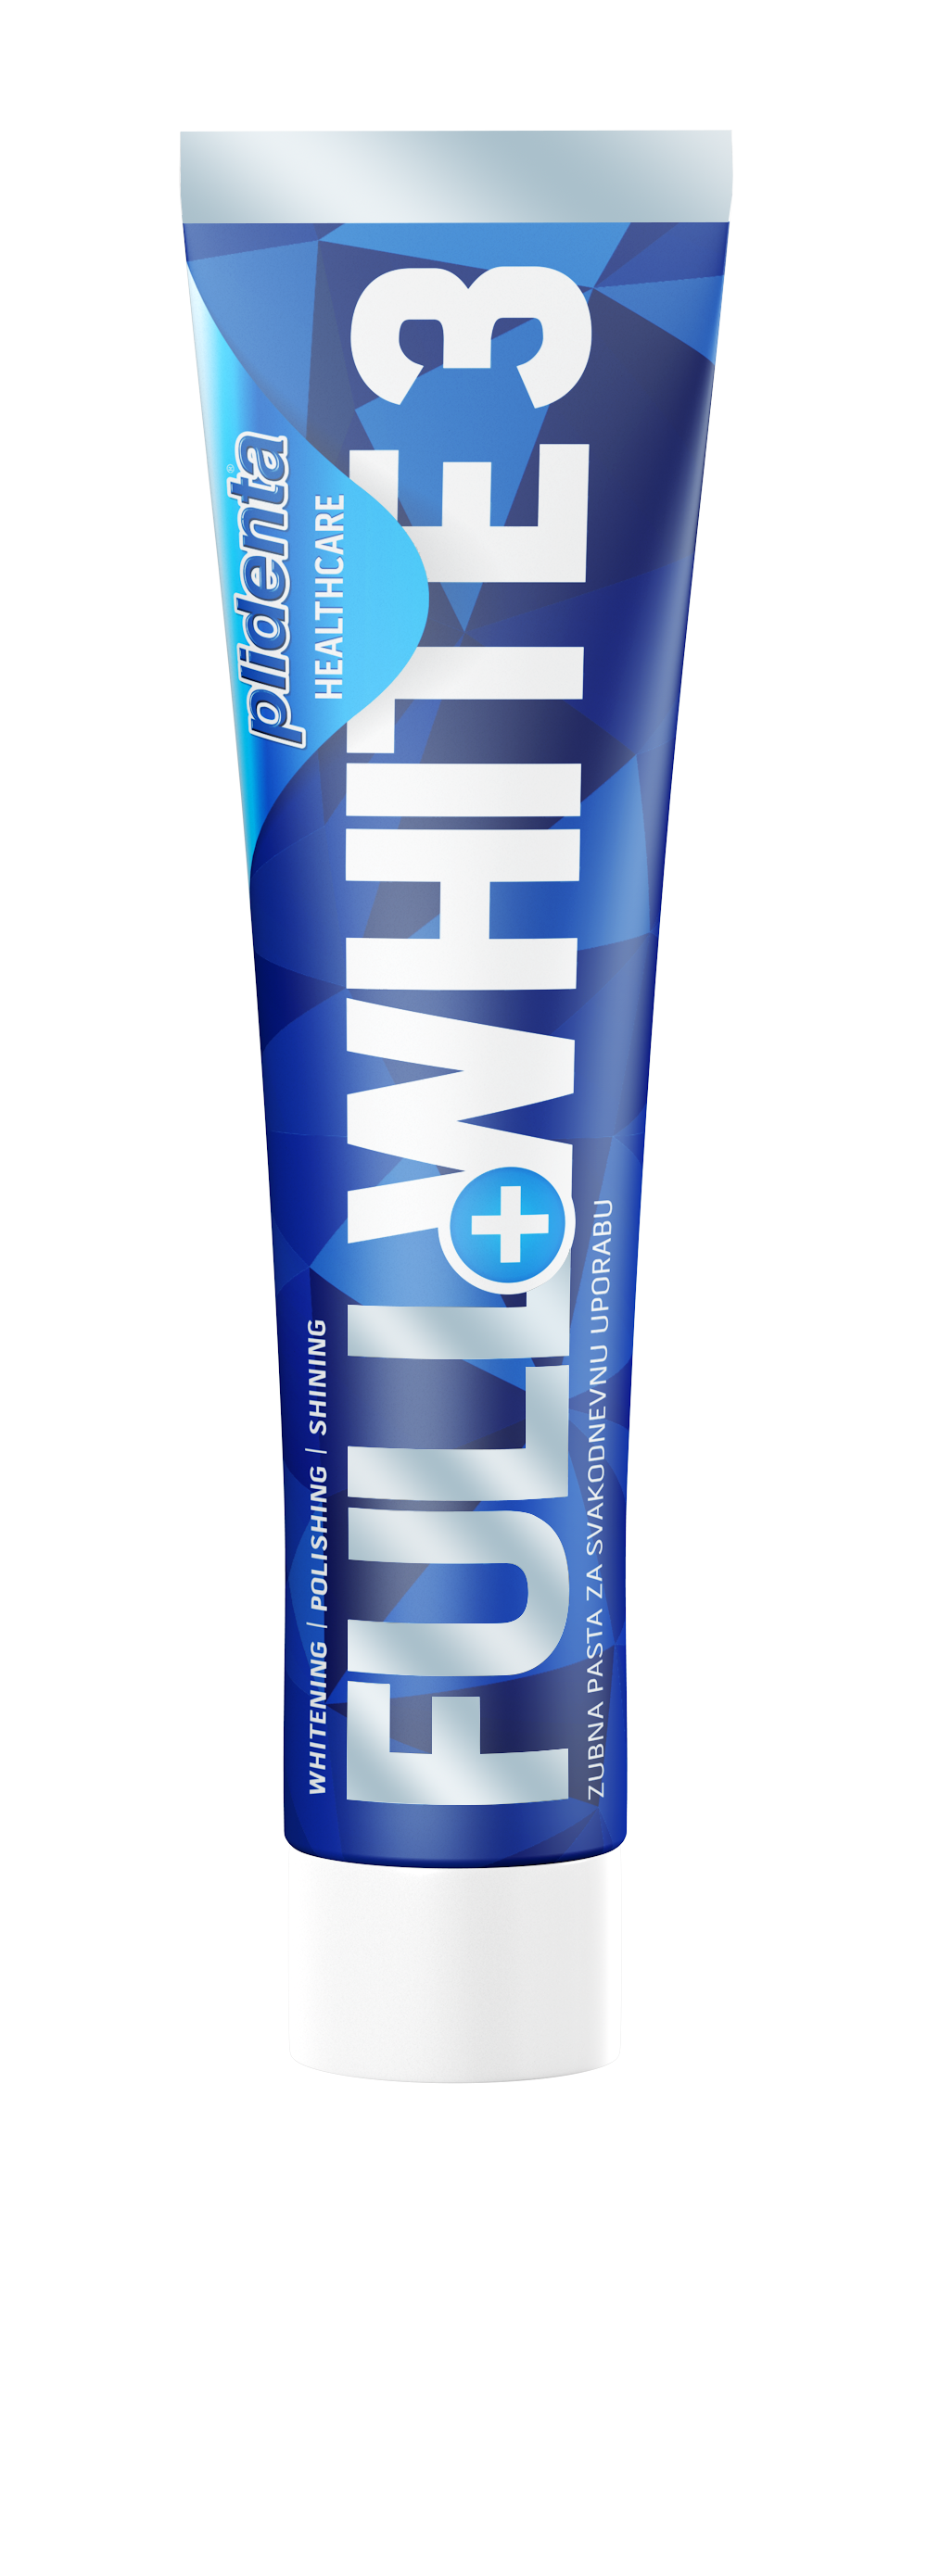 Exclusive sensation! Our new whitening toothpaste Plidenta Healthcare Fullwhite 3 is coming very soon. Whitening in 3 dimensions. Launching: March 2017